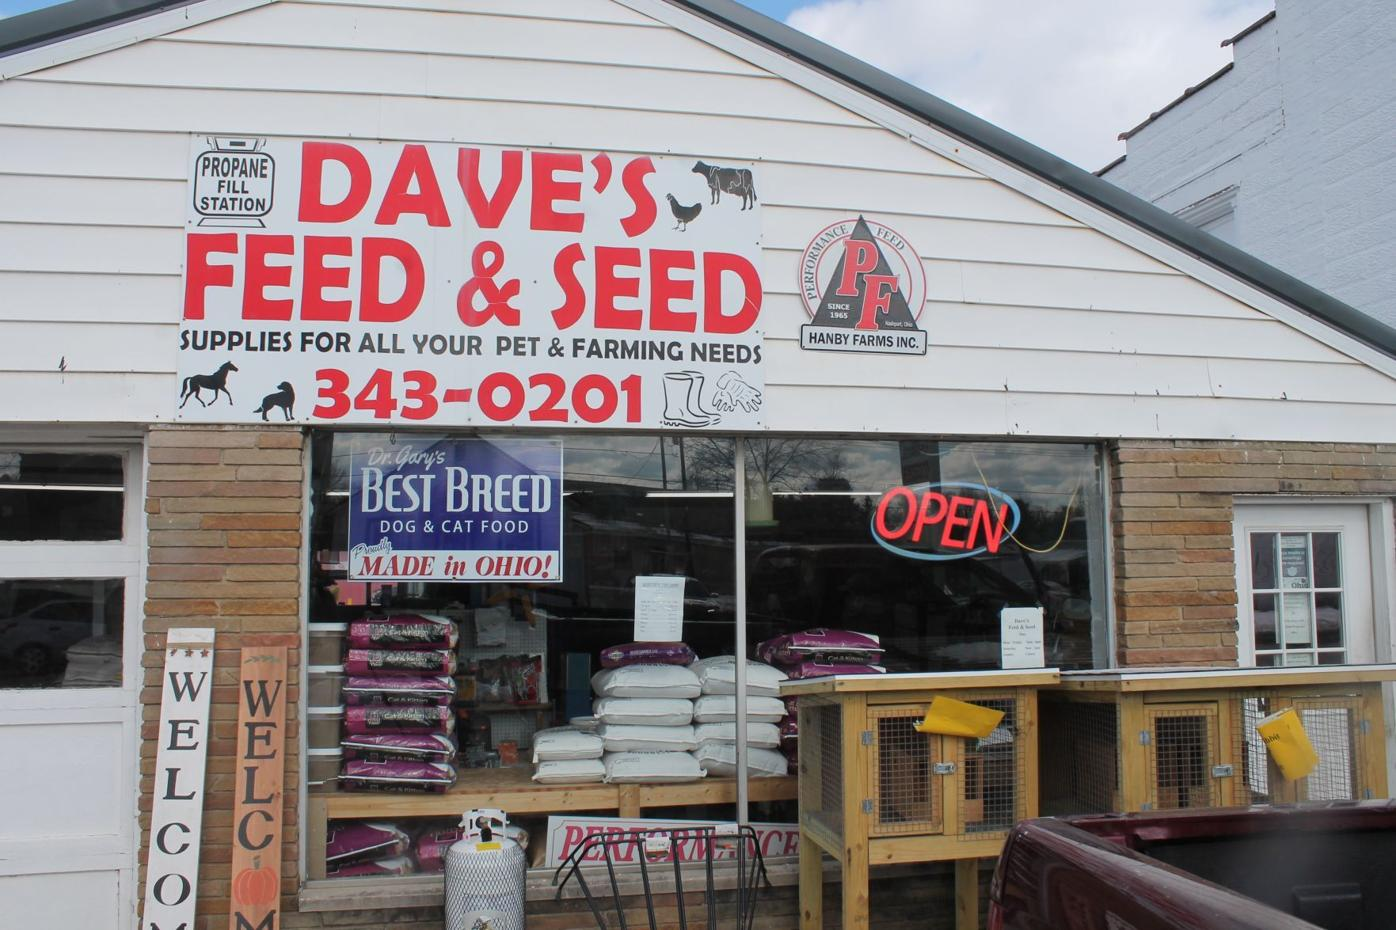 Chamber spotlights Dave's Feed & Seed